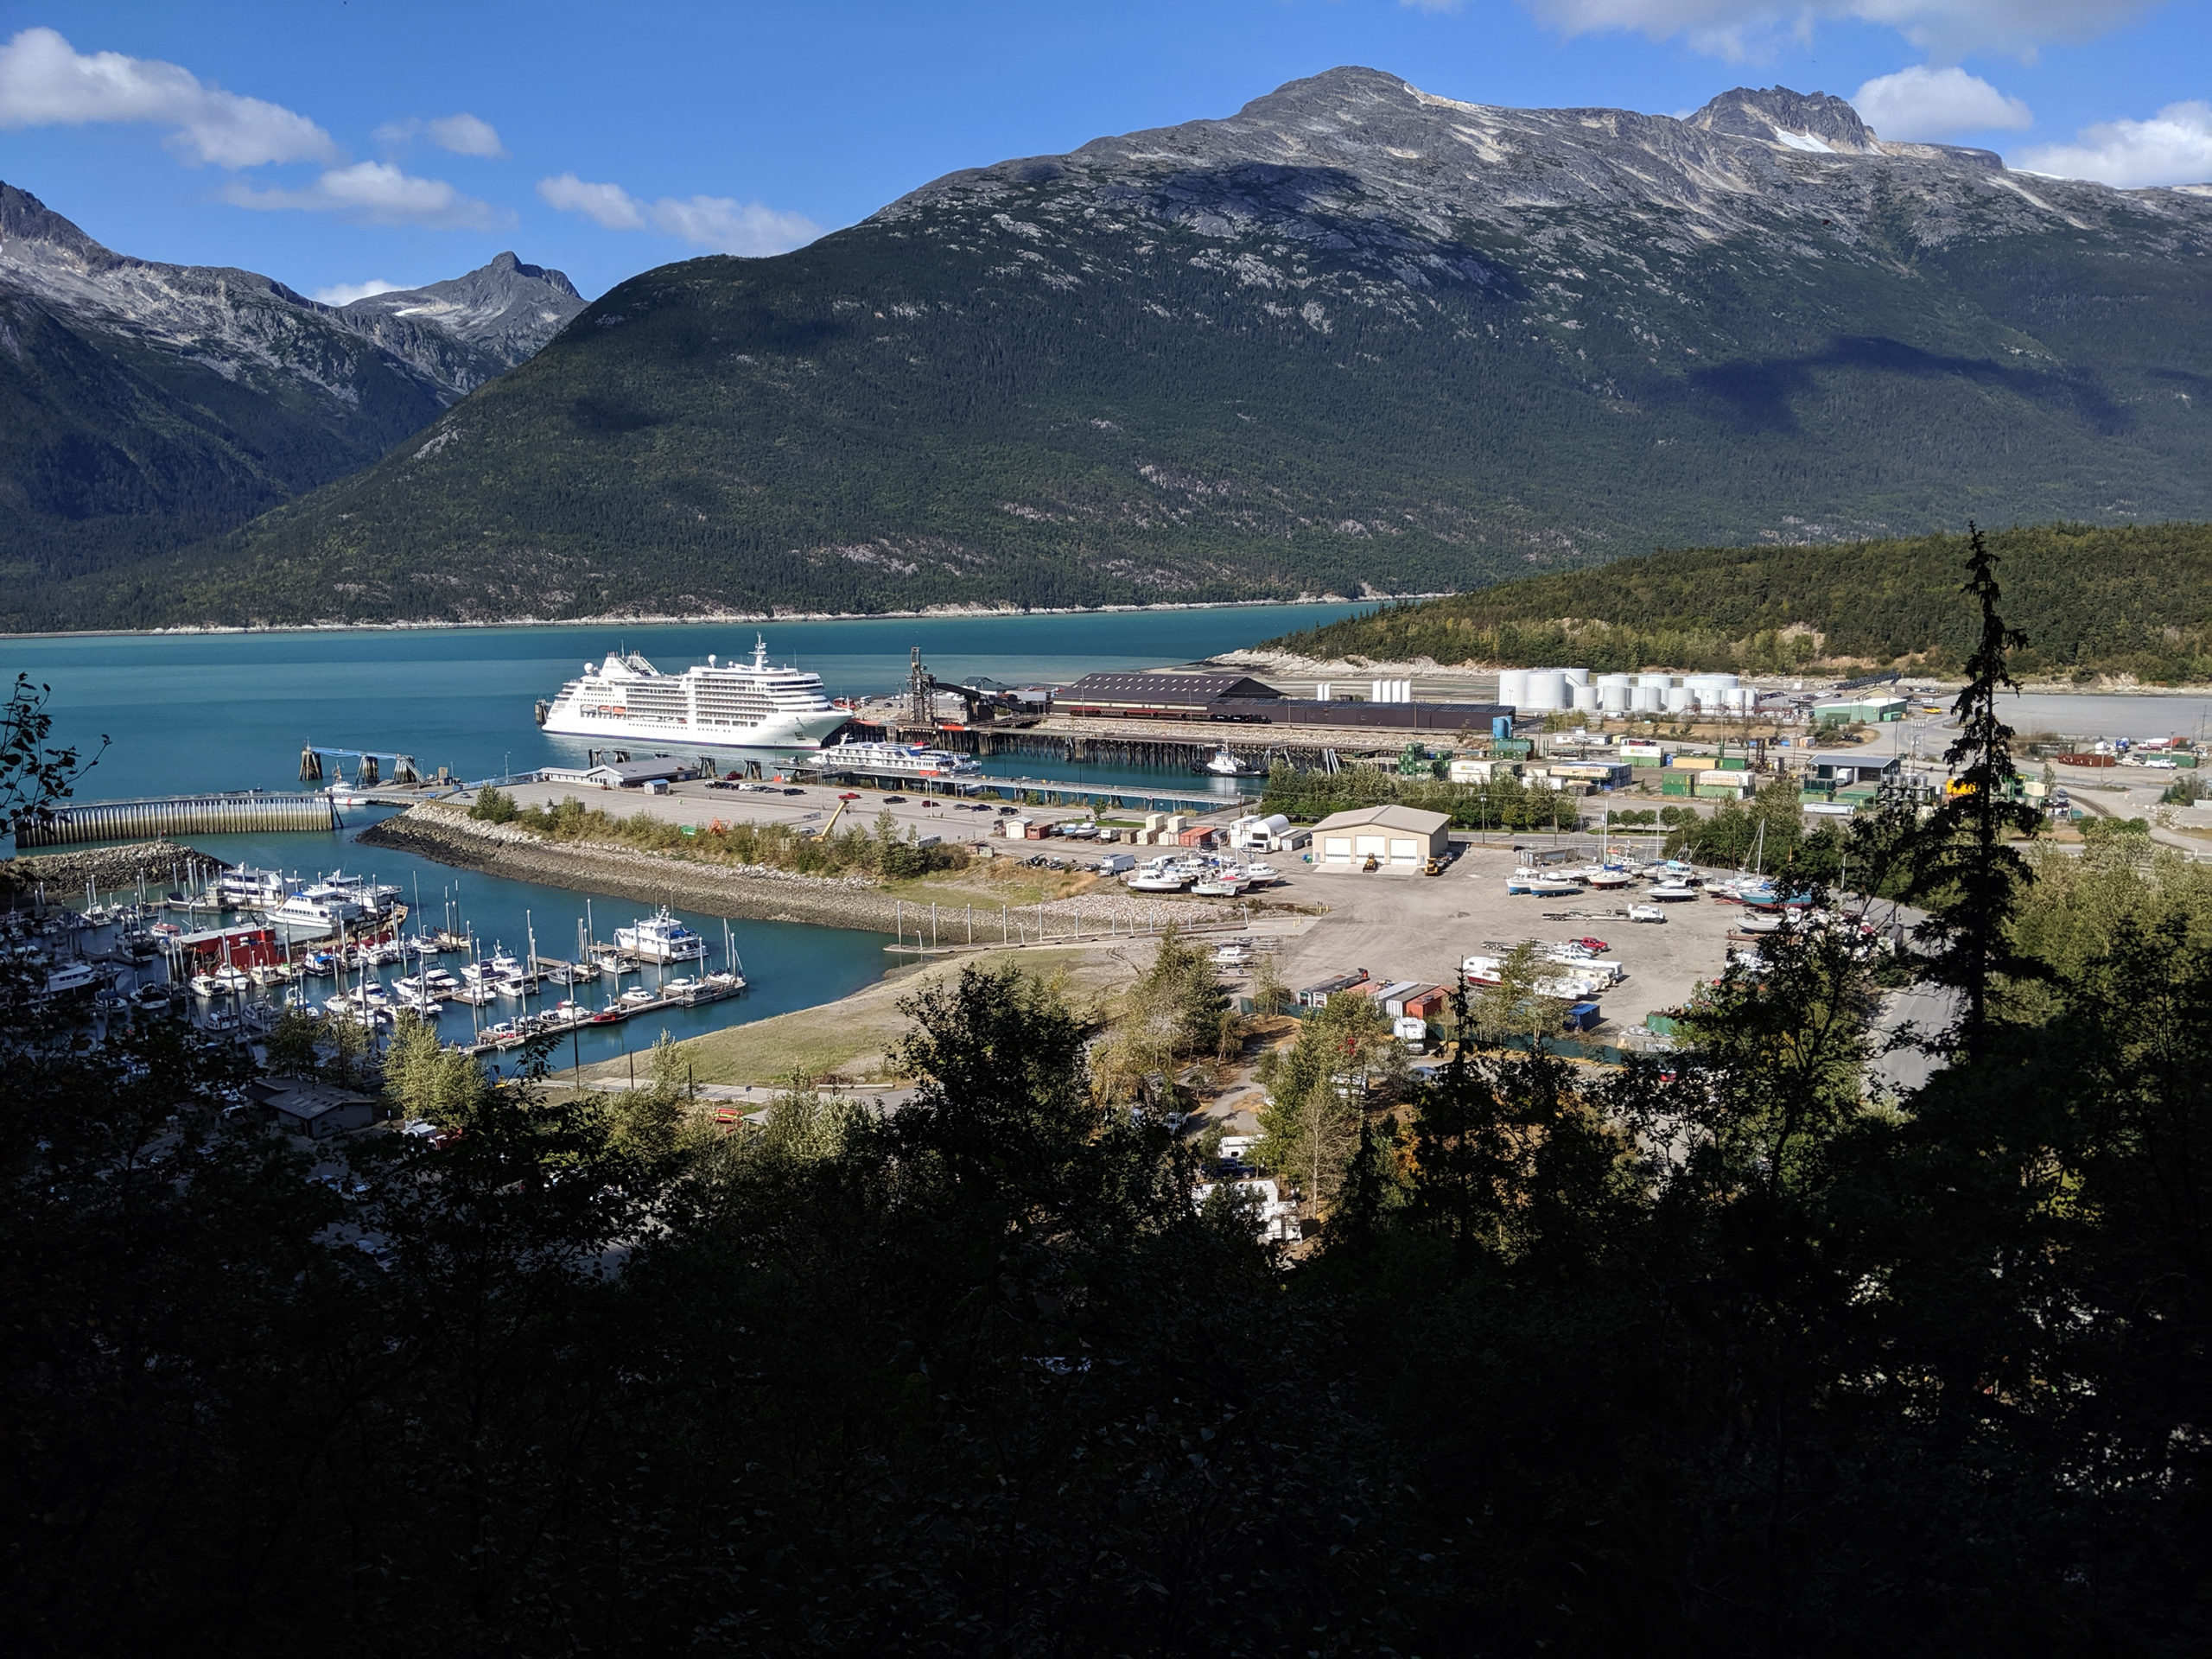 The harbour of Skagway, Alaska, pictured from the Dewey Lakes Trail System on Aug. 18, 2019. (Steve Silva)